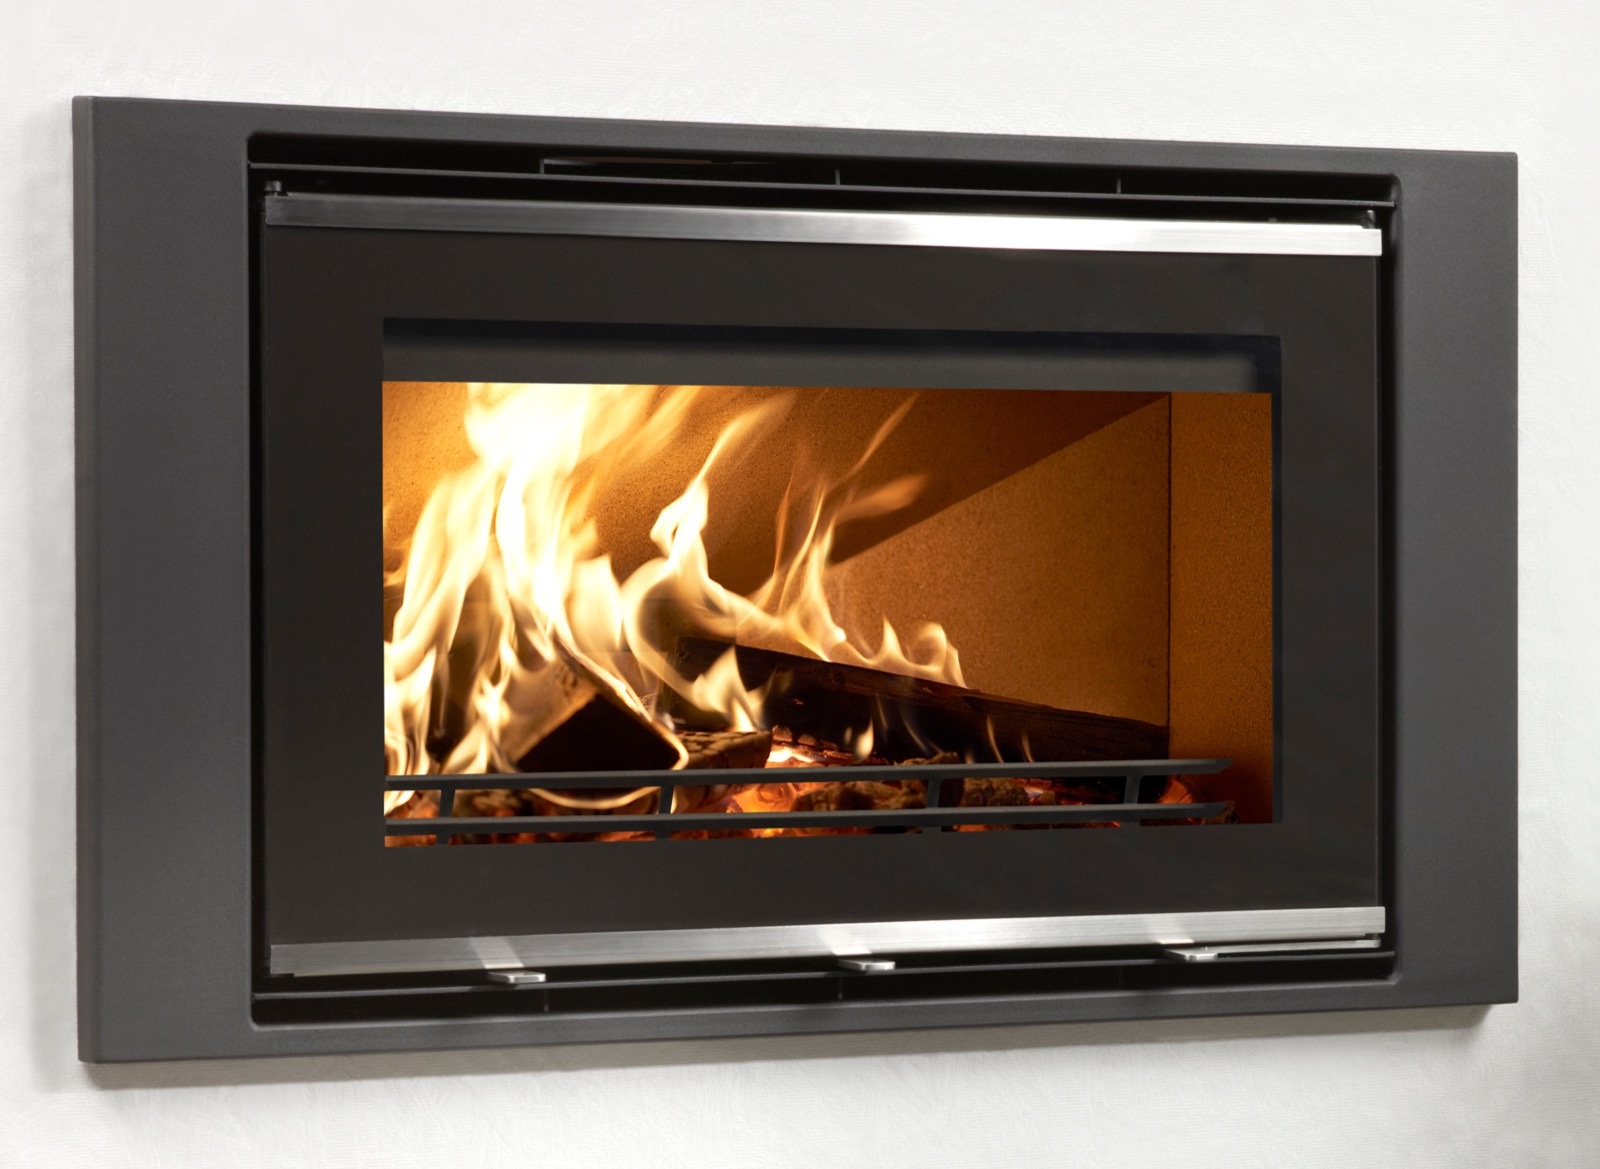 westfire uniq 32 glass fronted inset wood burning stove with wide frame - Wood Burning Picture Frame